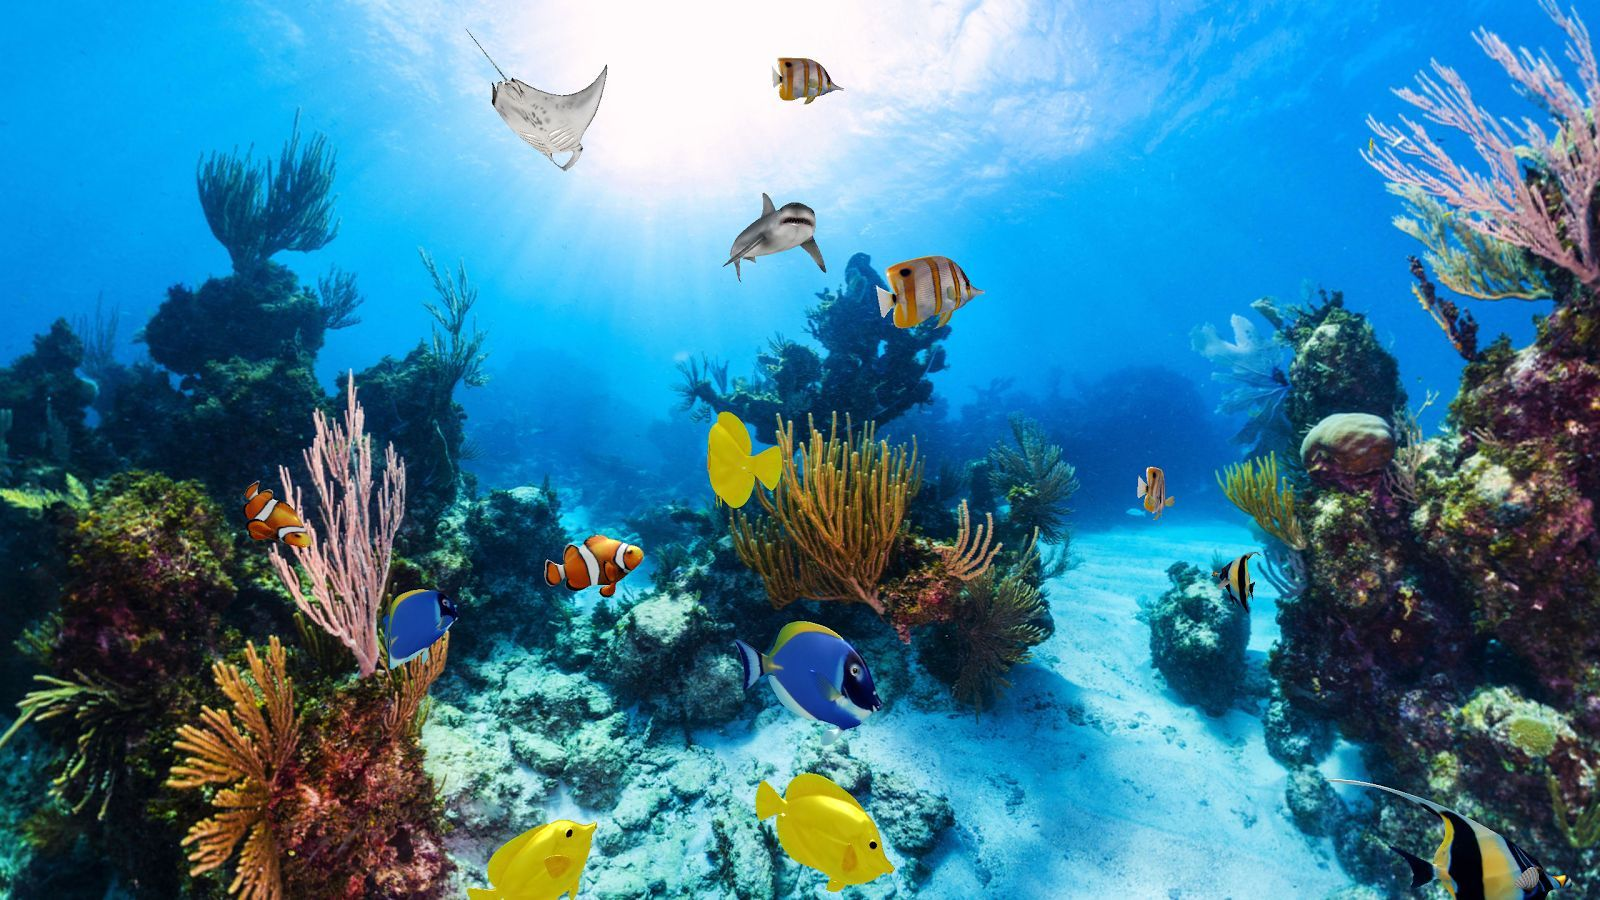 Download Trial Aquarium 360 Degree 3D Live Wallpaper Free for